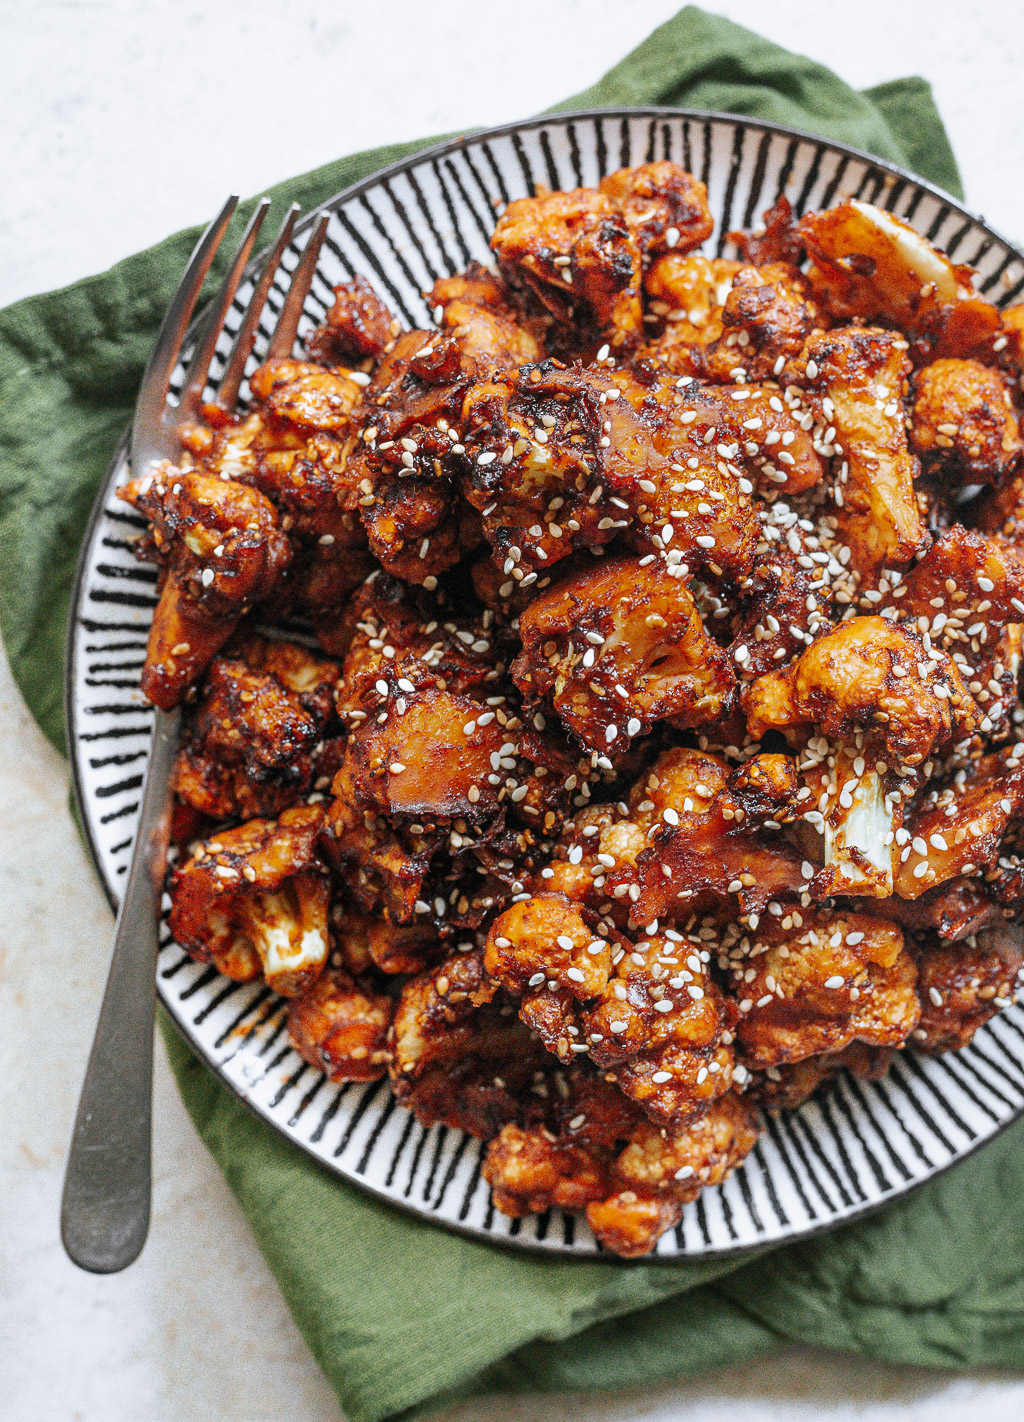 Oven Baked Gobi Manchurian The Blurry Lime